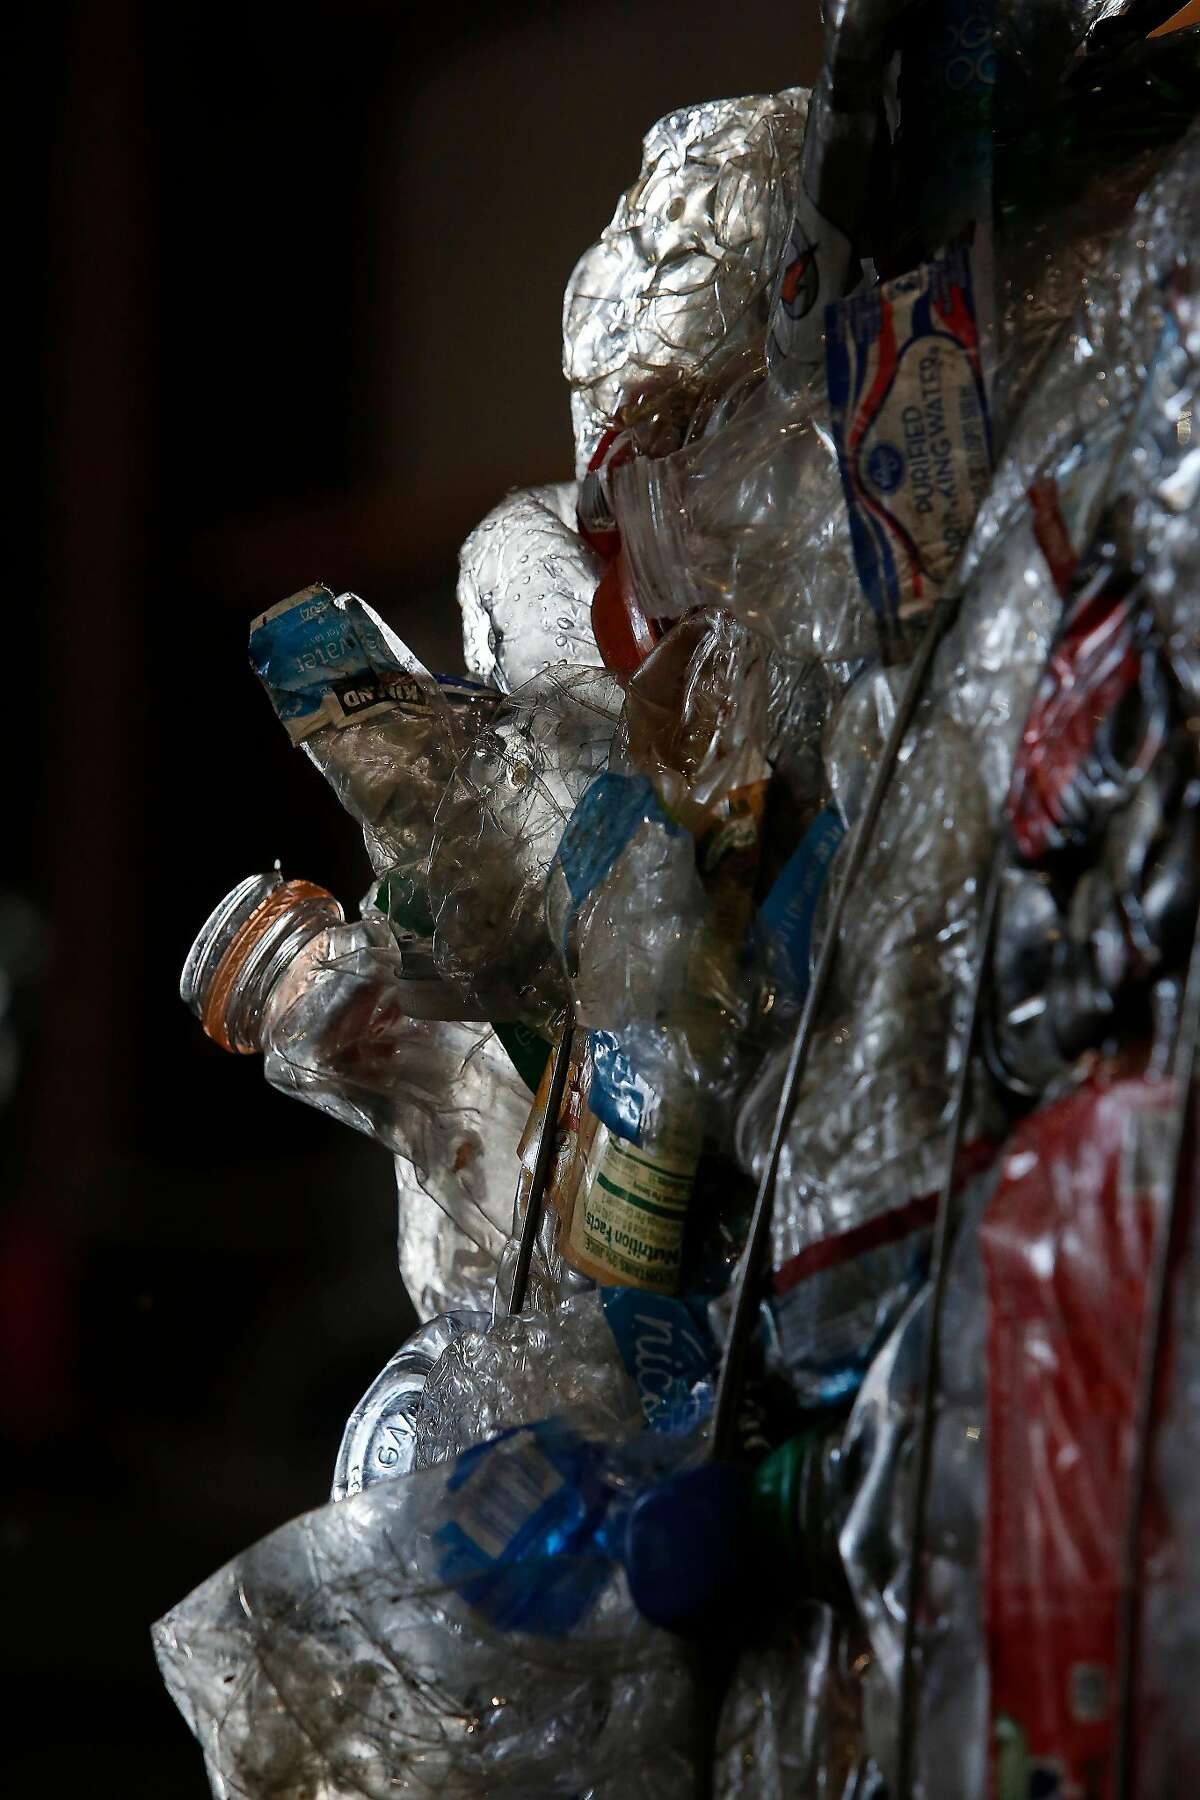 Plastic bottles are seen baled together at the Recology recycling center on Monday, September 30, 2019 in San Francisco, CA.